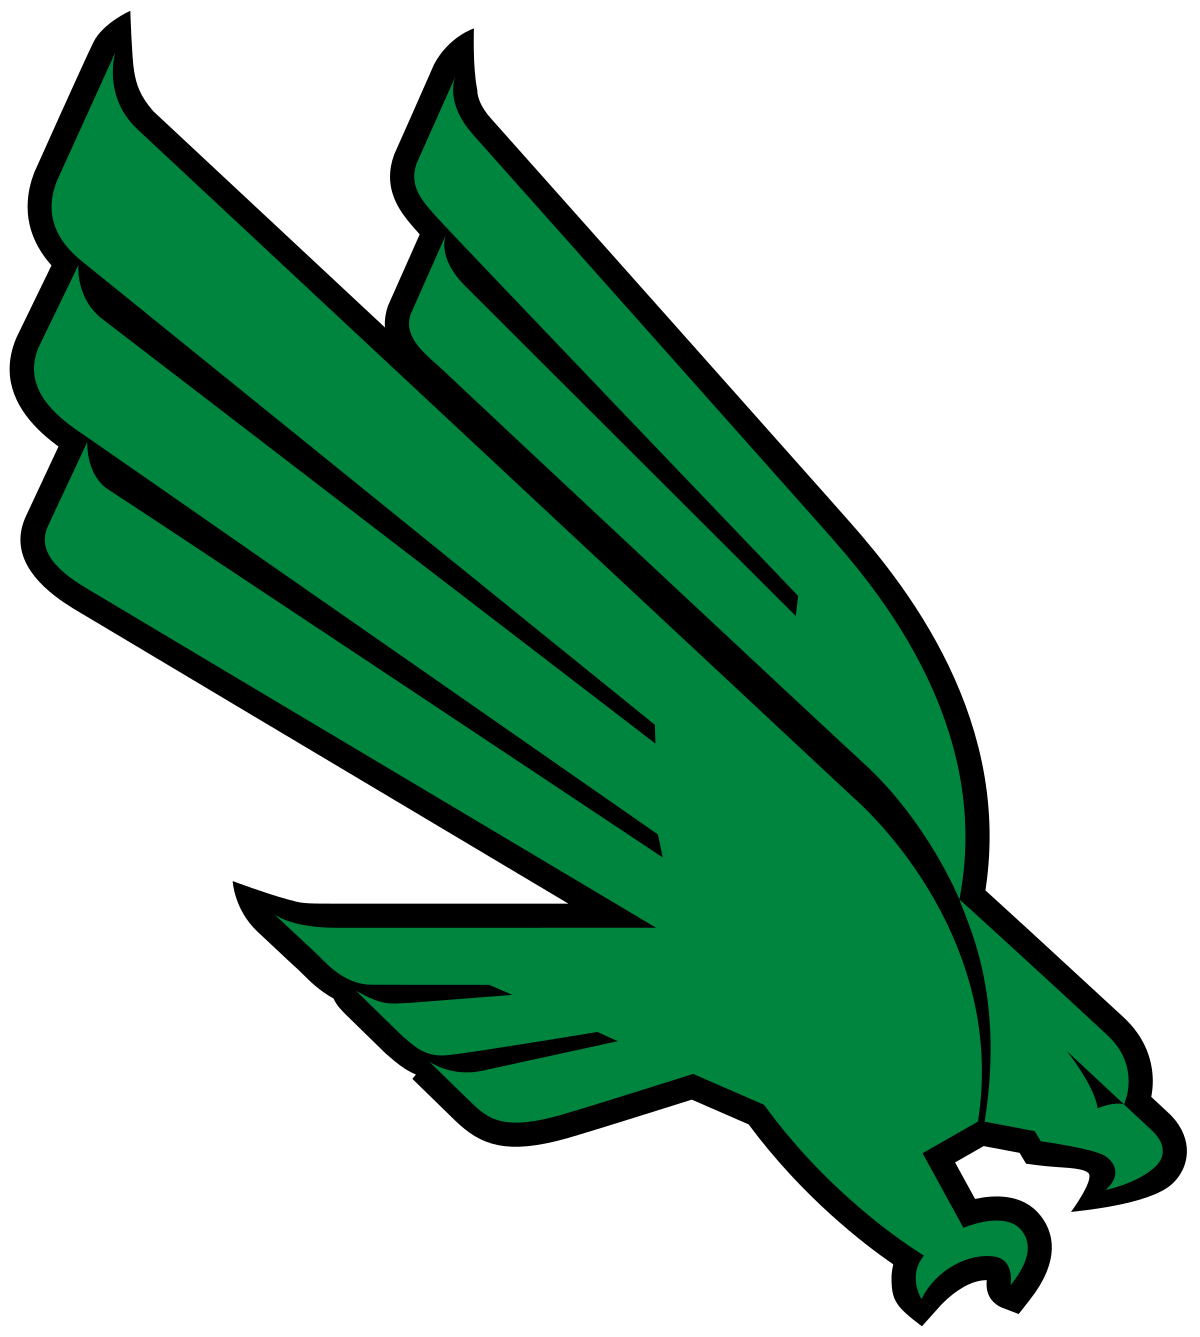 University of north texas logo png. Mean green wikipedia